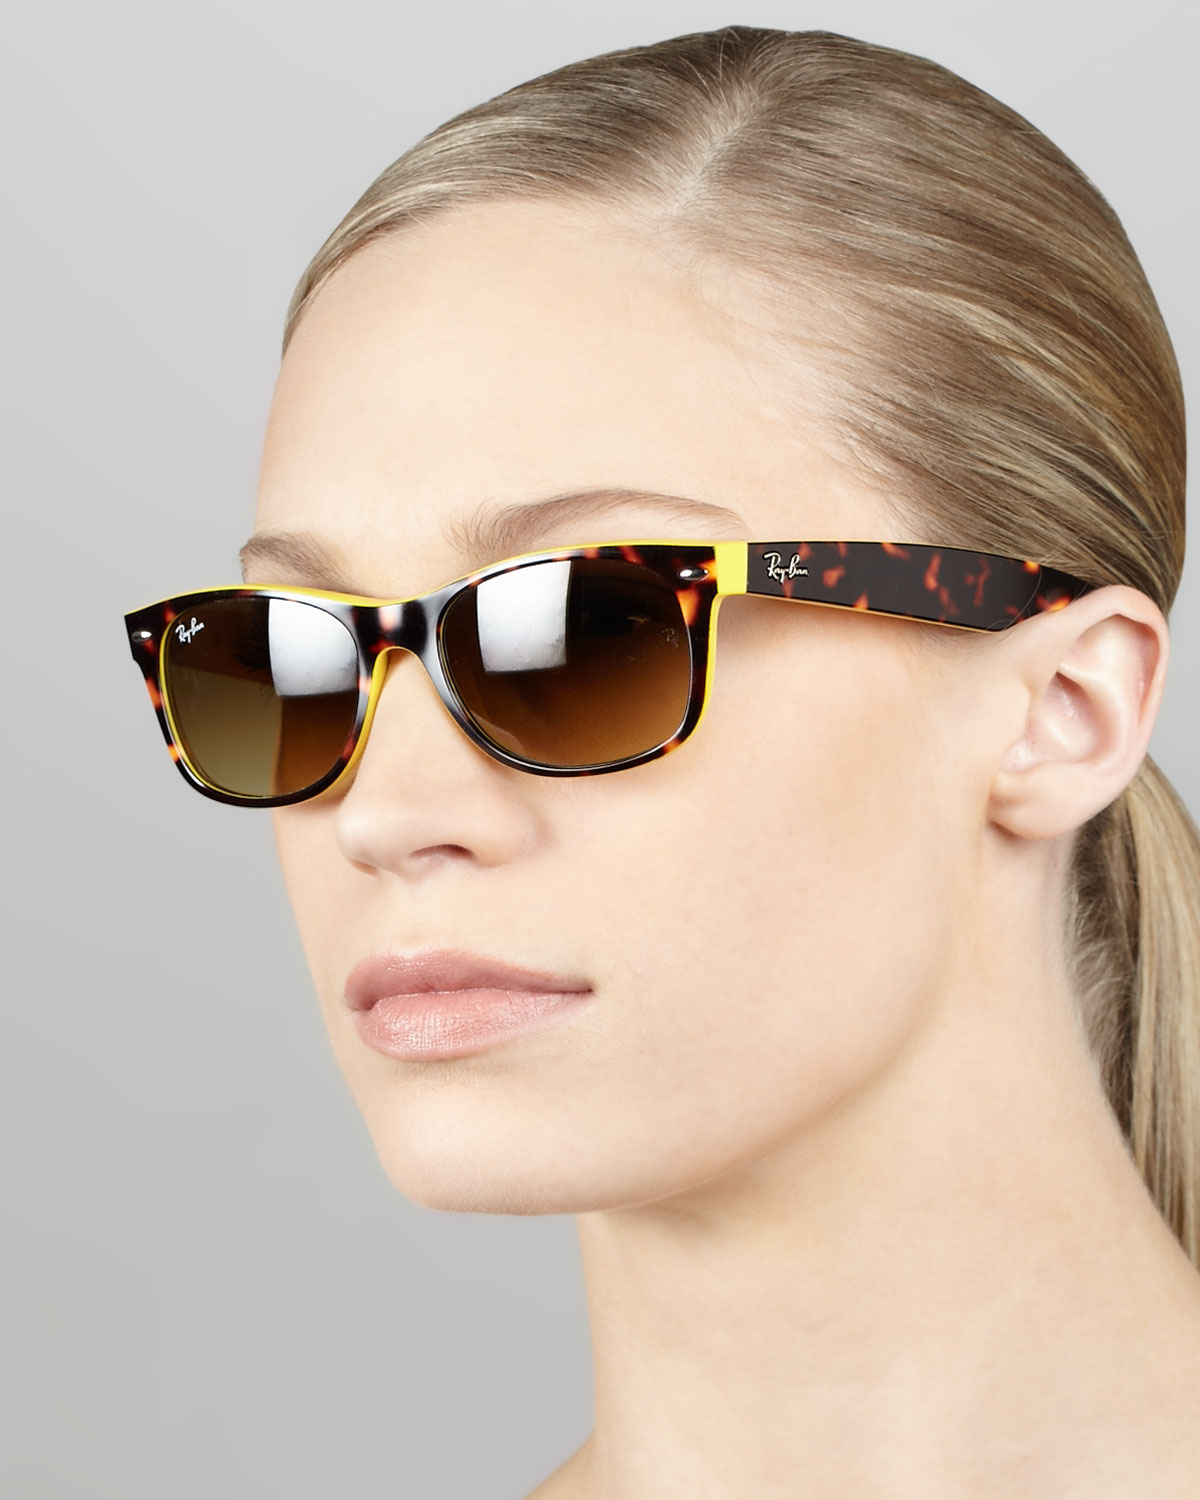 97f24a1ca Ray Ban Wayfarer Sunglasses Yellow And Black White Pattern ...